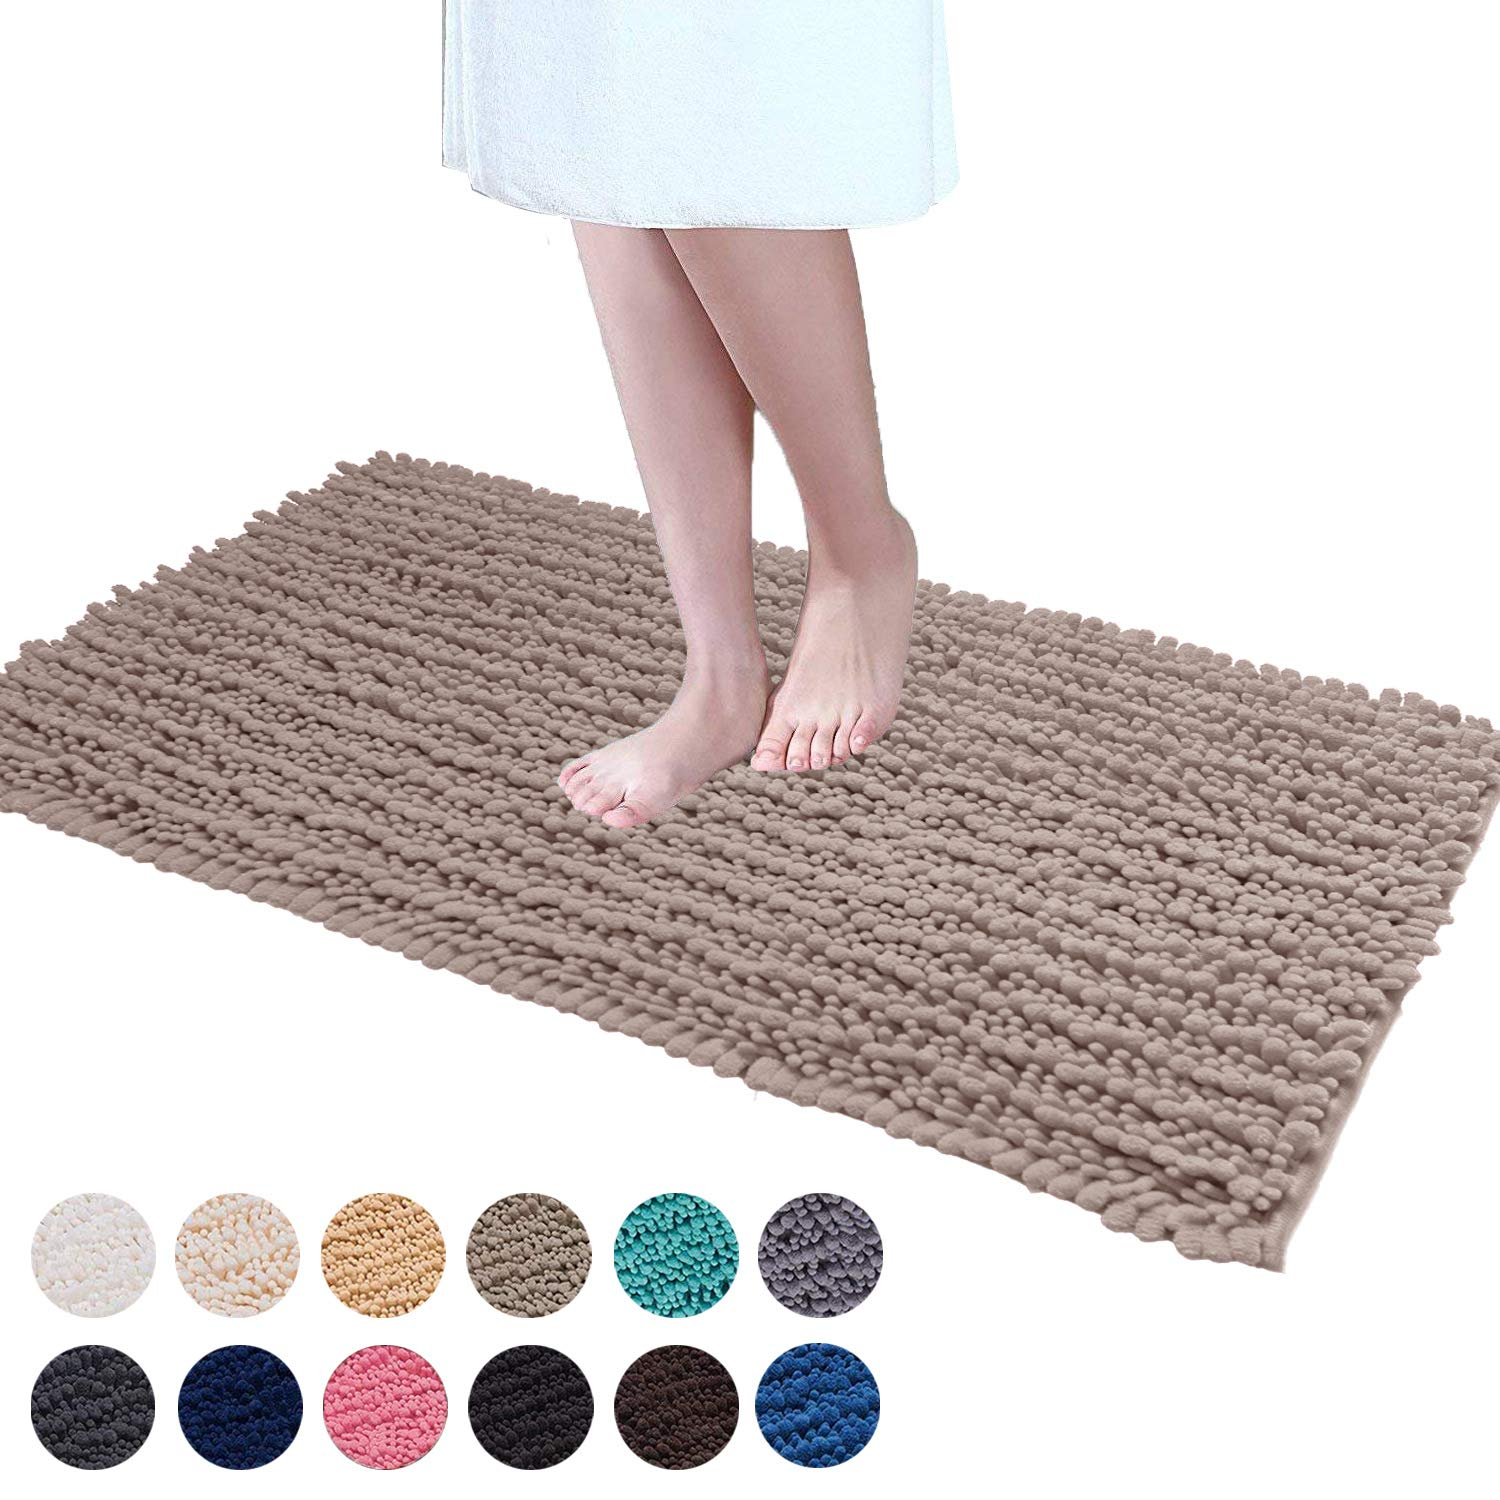 DEARTOWN Non-Slip Thick Microfiber Bathroom Rugs, Machine-Washable Bath Mats with Water Absorbent (27.5x47 Inches, Style 1: Beige)